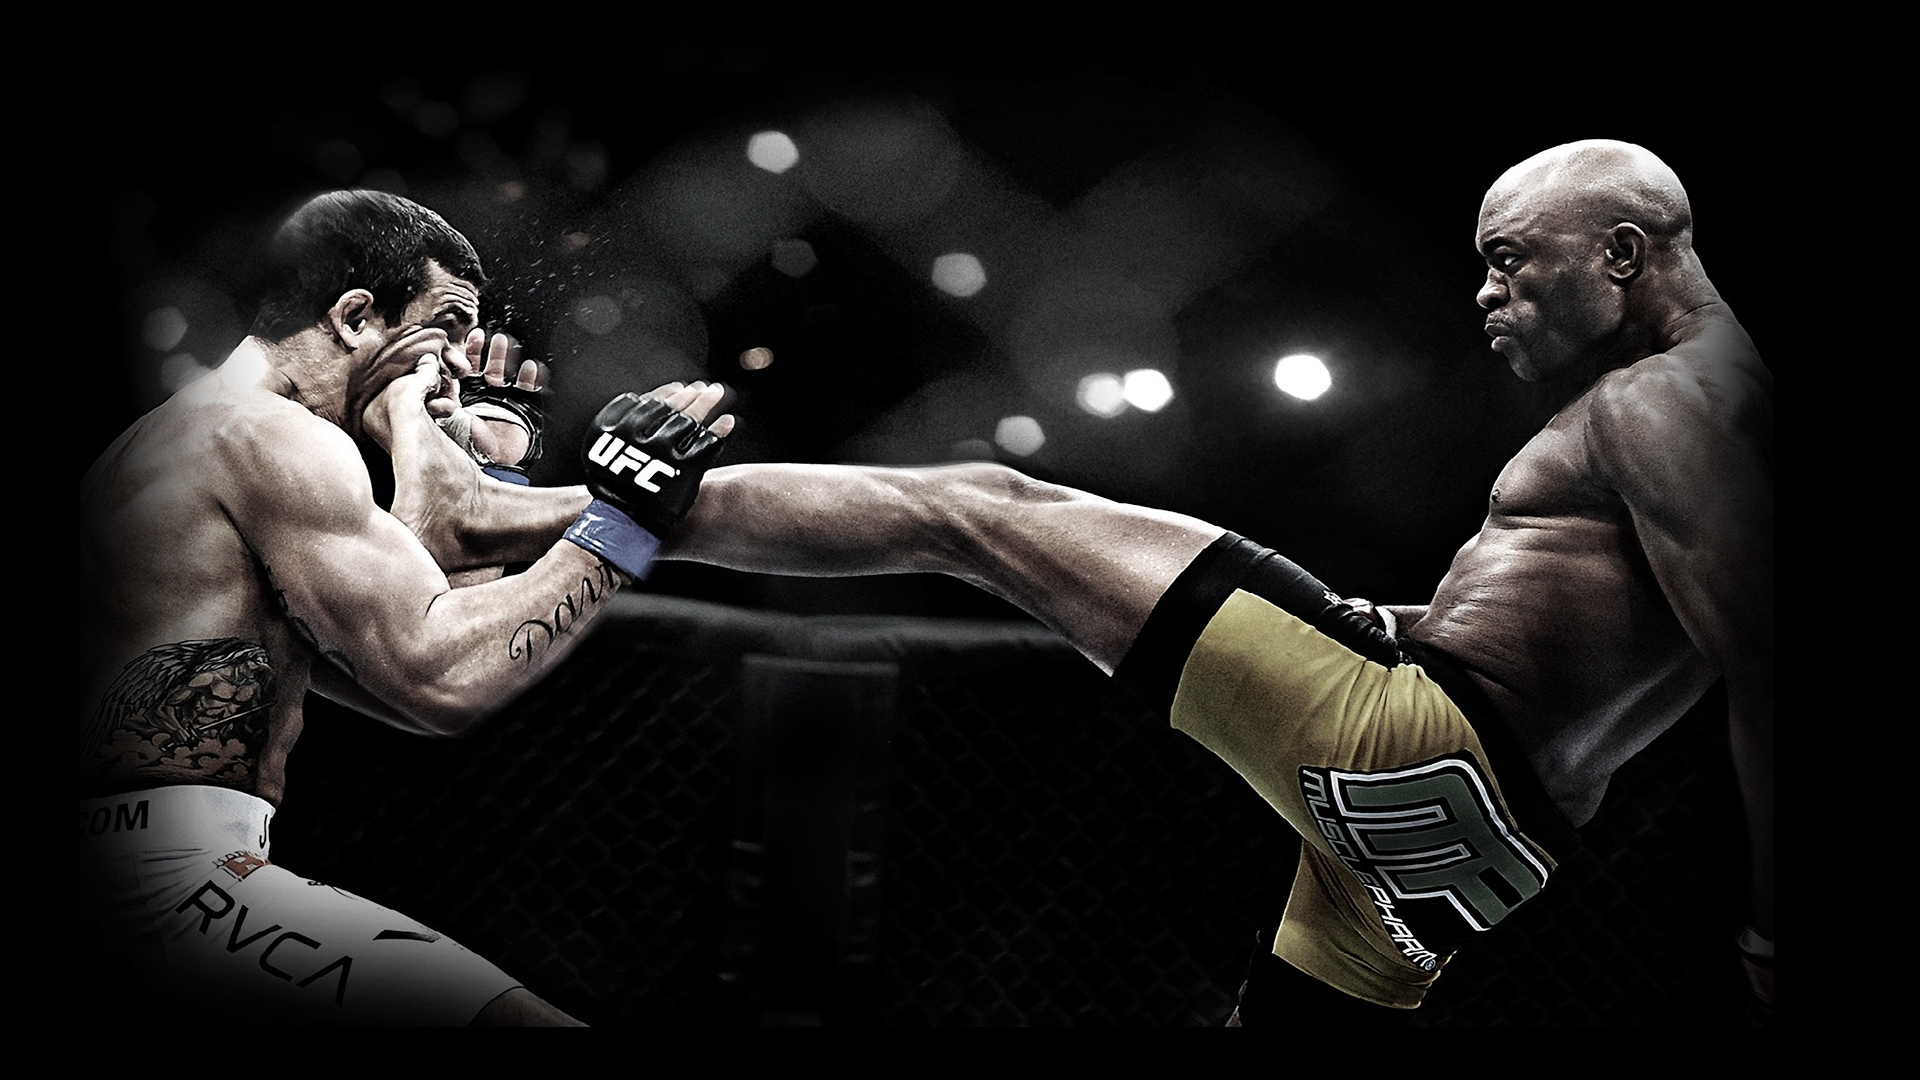 49 Hd Ufc Wallpaper On Wallpapersafari